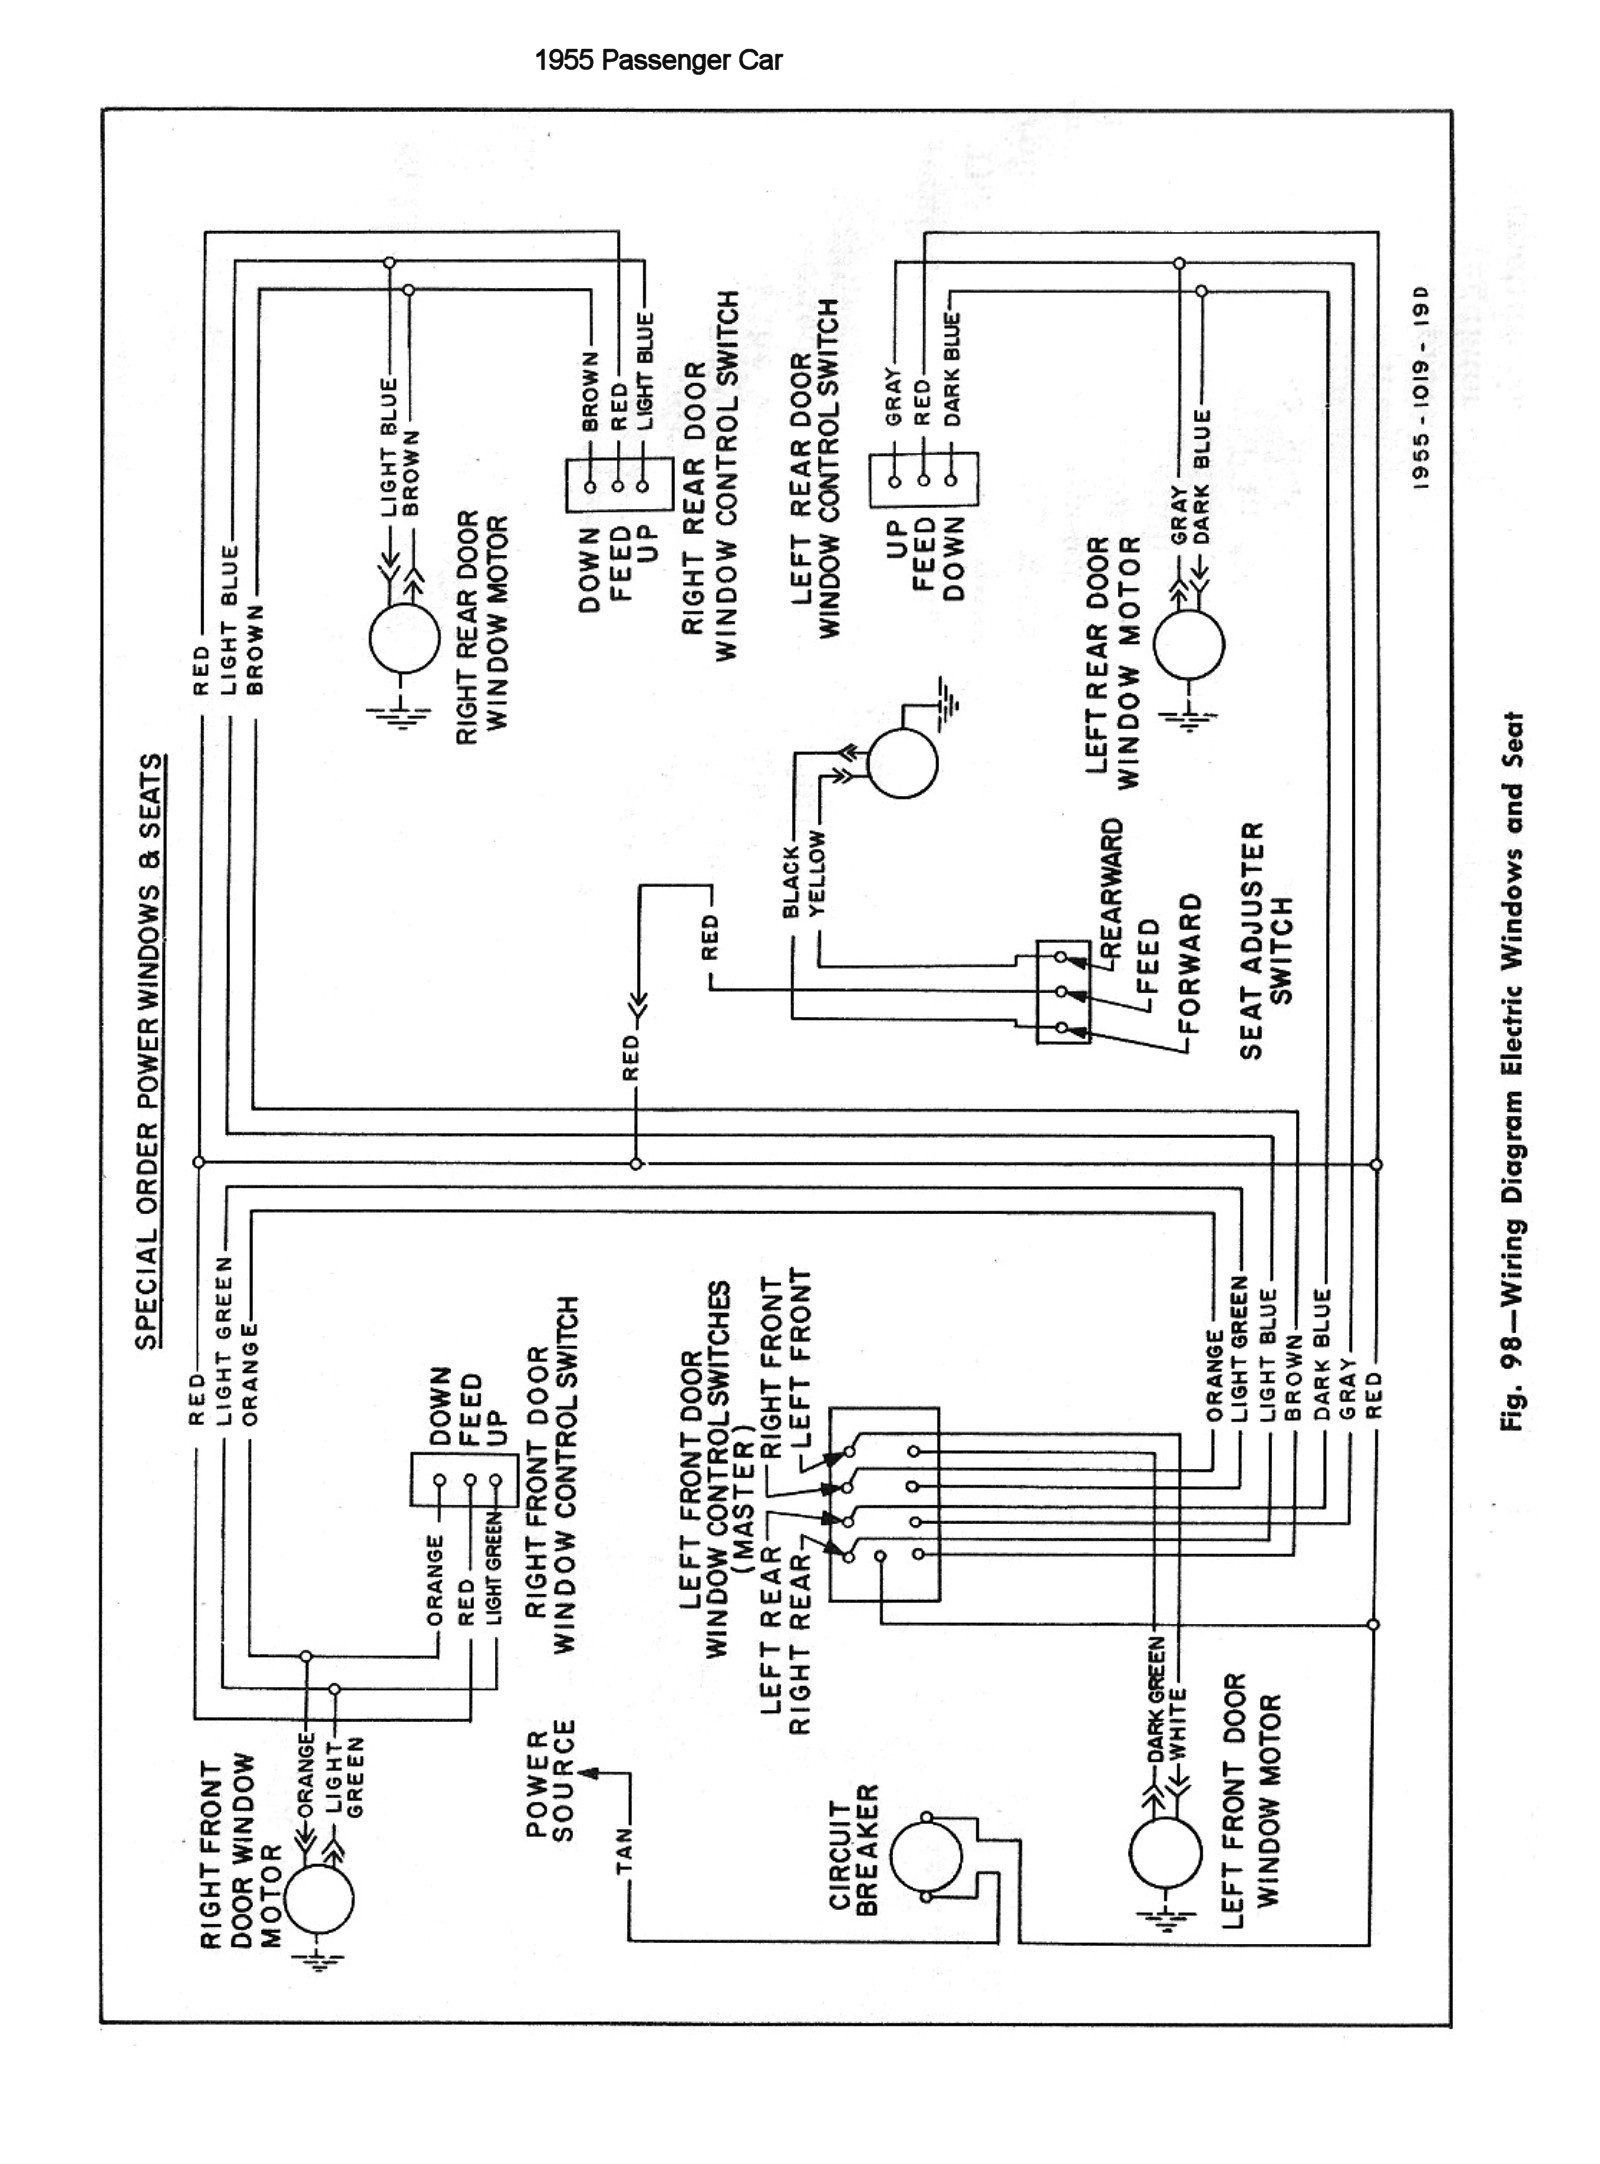 willys turn signal wiring diagram schematic diagramWillys Truck Turn Signal Wiring Diagram #8